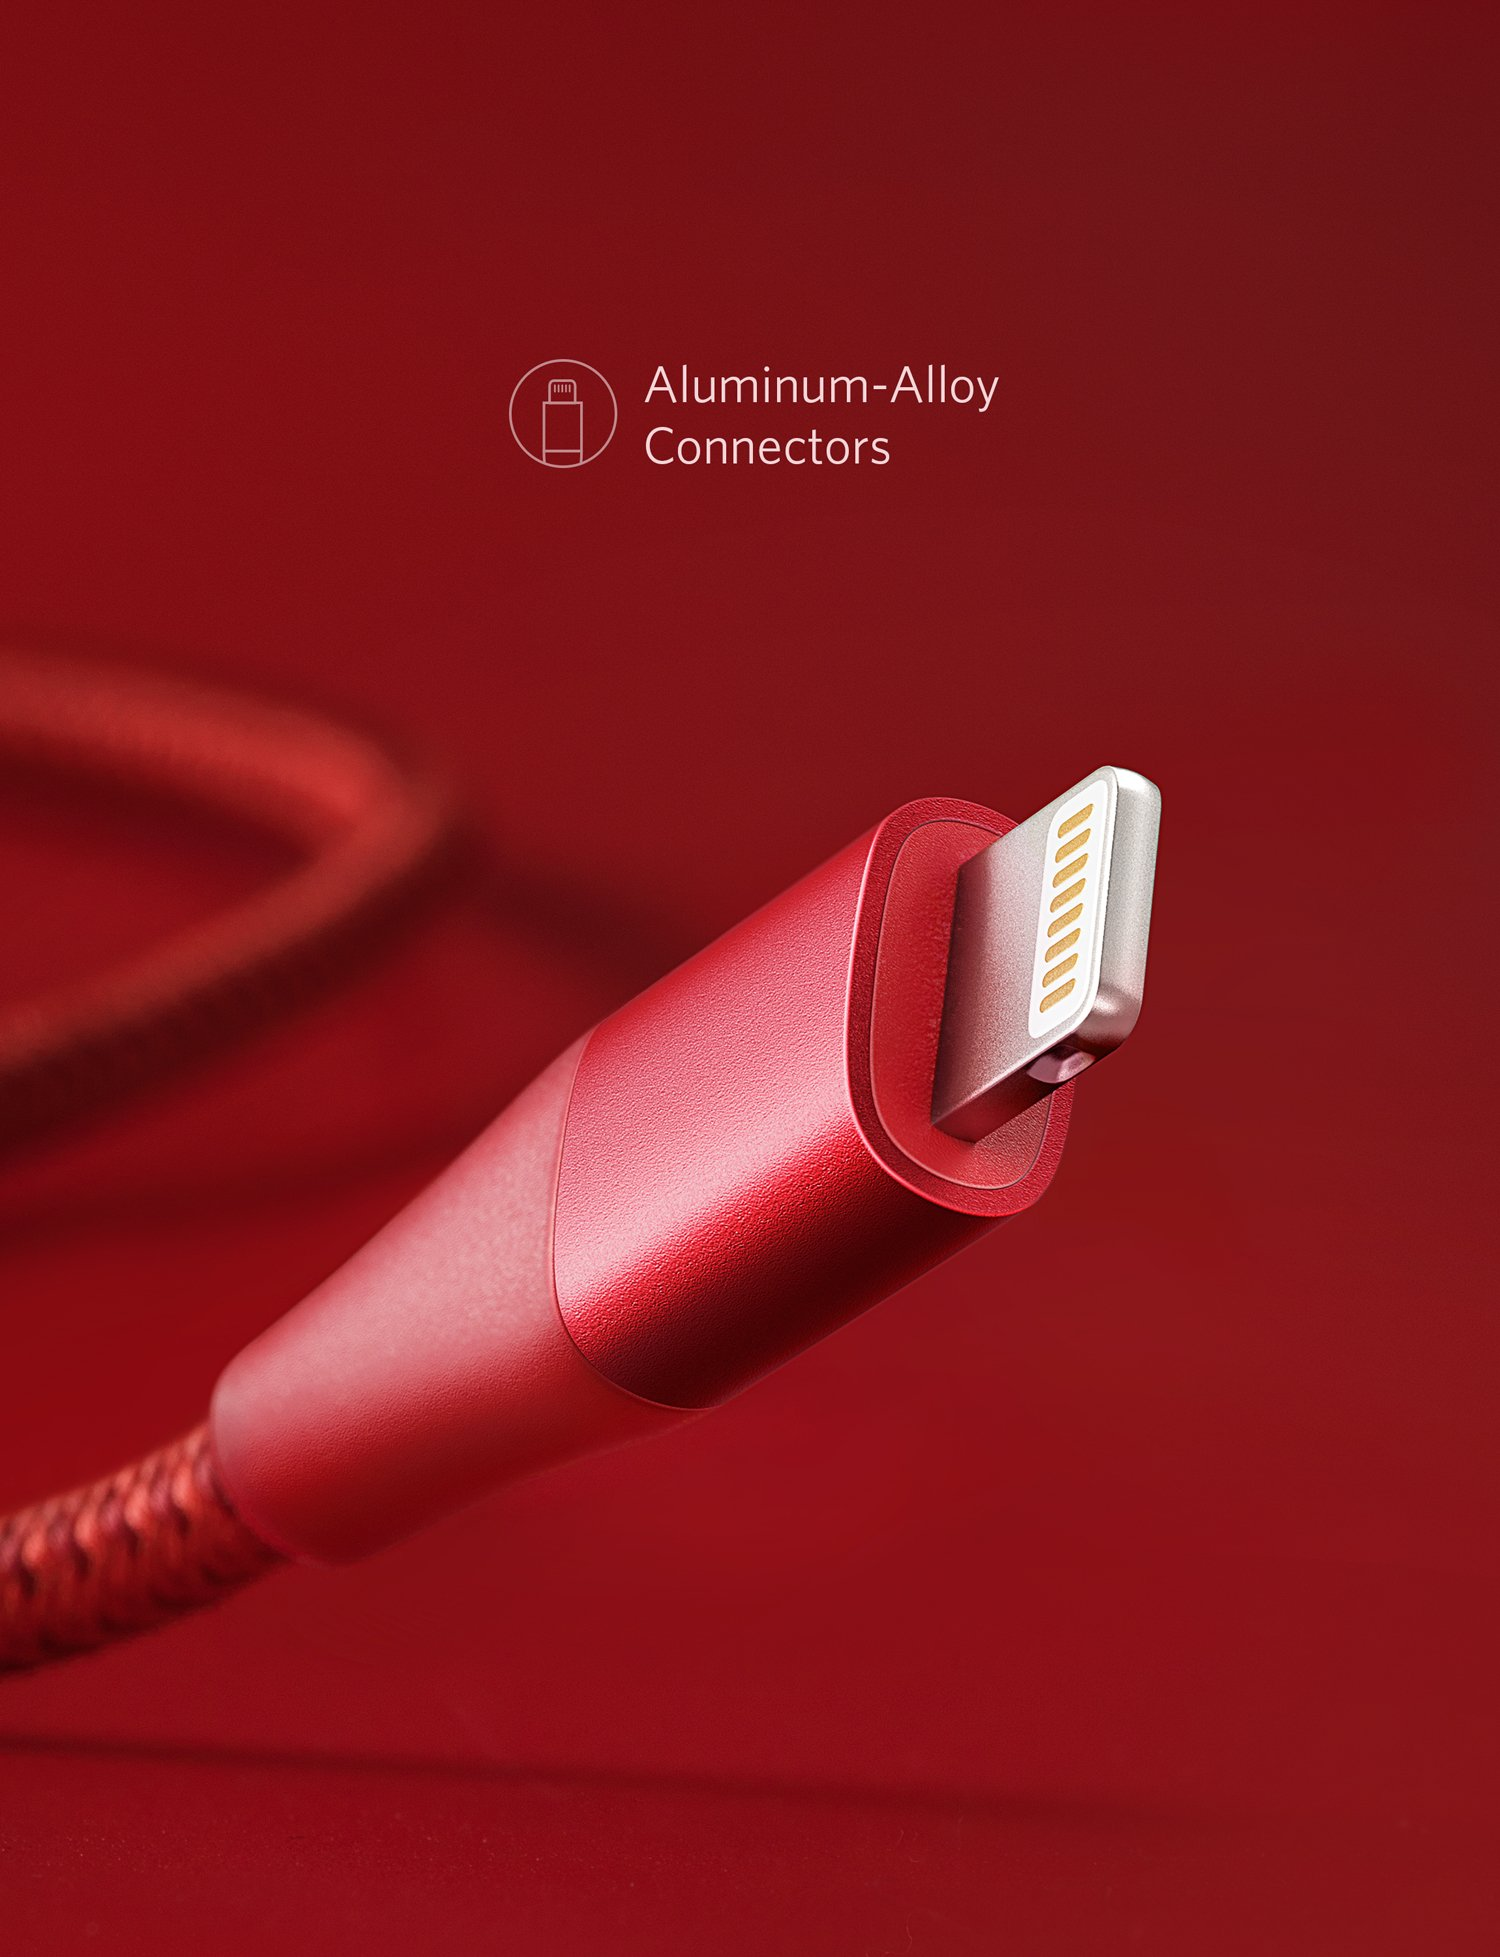 Anker Powerline+ II Lightning Cable (10ft), MFi Certified for Flawless Compatibility with iPhone X / 8/8 Plus / 7/7 Plus / 6/6 Plus / 5 / 5S and More(Red) by Anker (Image #5)